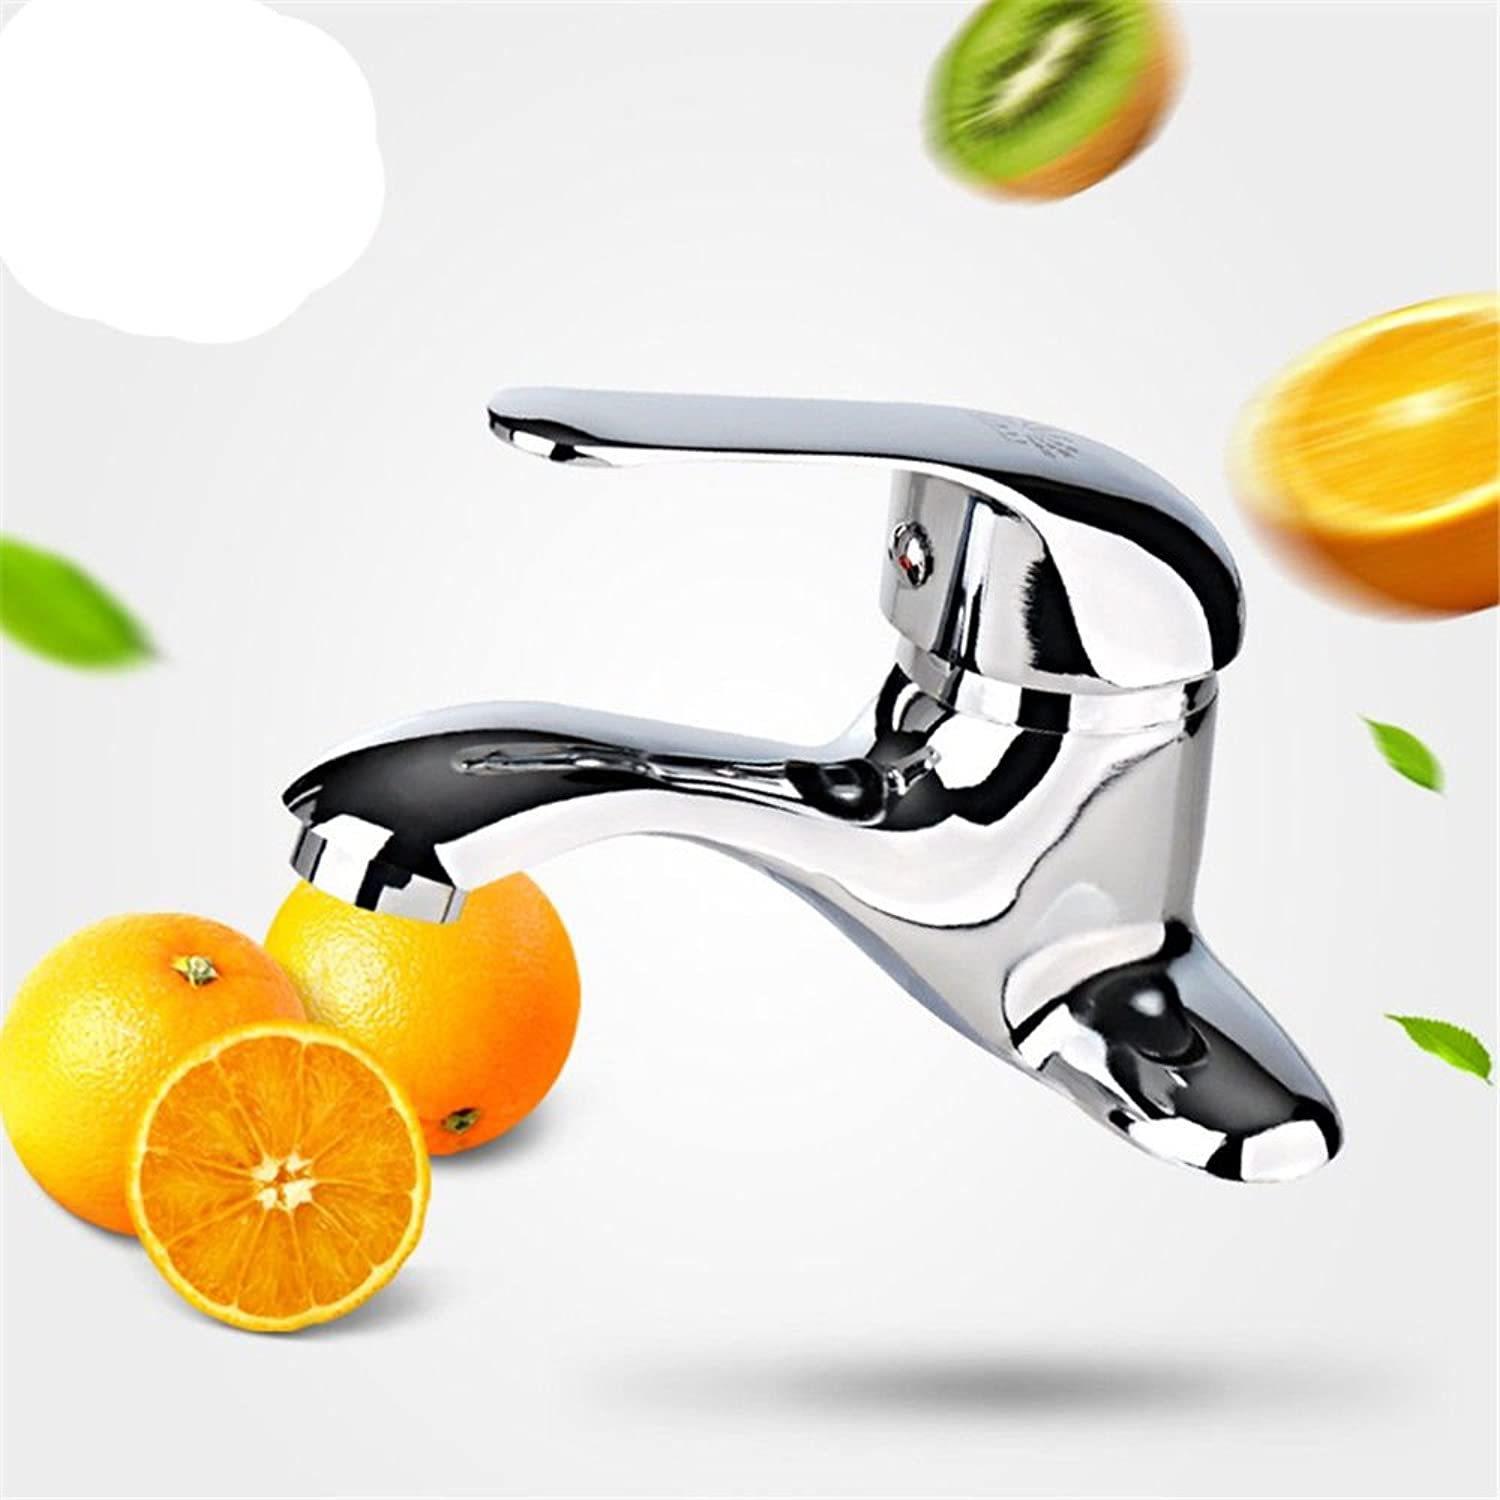 ETERNAL QUALITY Bathroom Sink Basin Tap Brass Mixer Tap Washroom Mixer Faucet Two holes stainless basin double shower faucet plating Kitchen Sink Taps